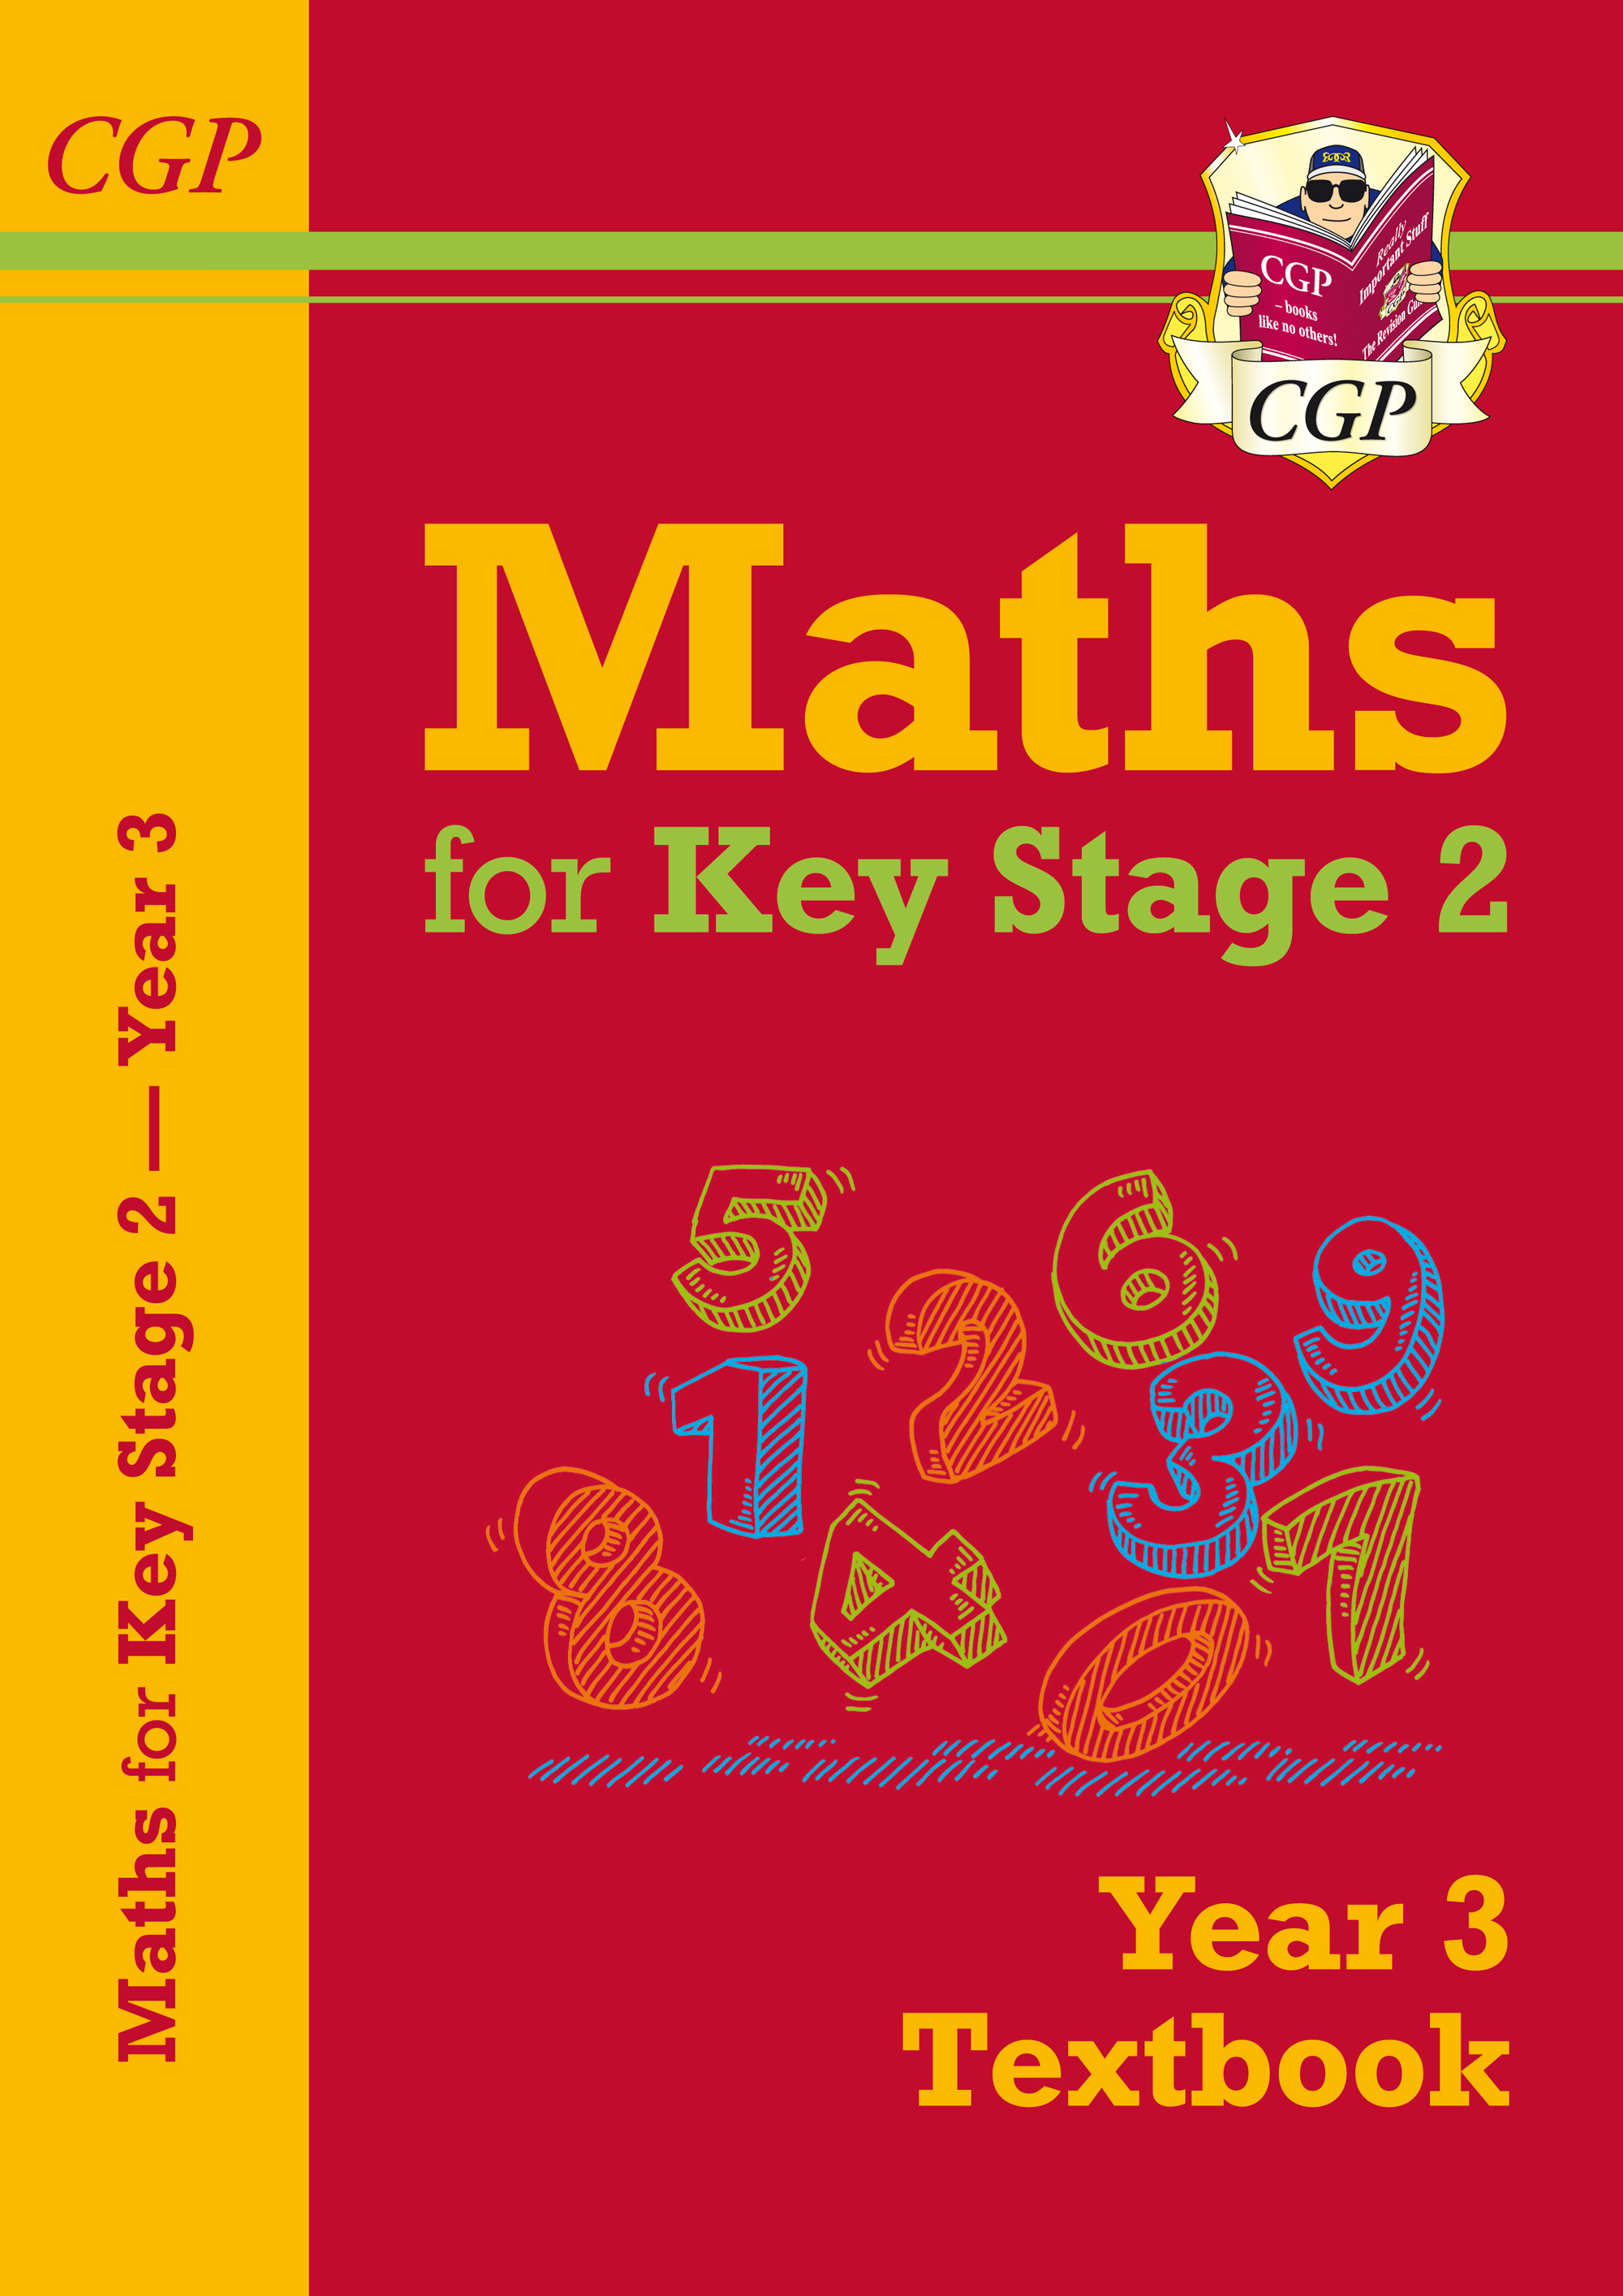 M3PB21 - KS2 Maths Textbook - Year 3